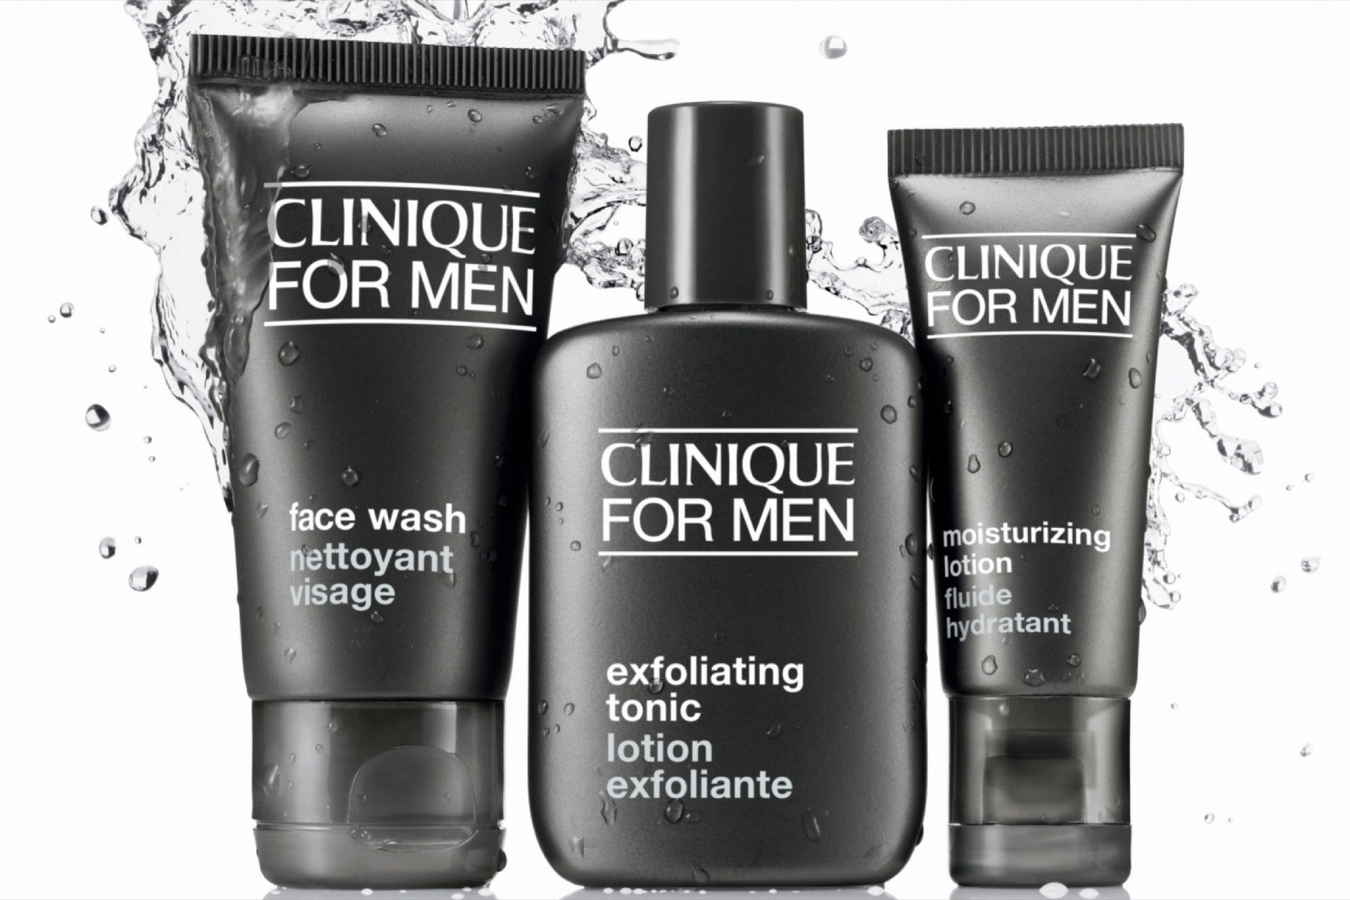 Clinique for men is now available through www.swaggerbox.co.uk